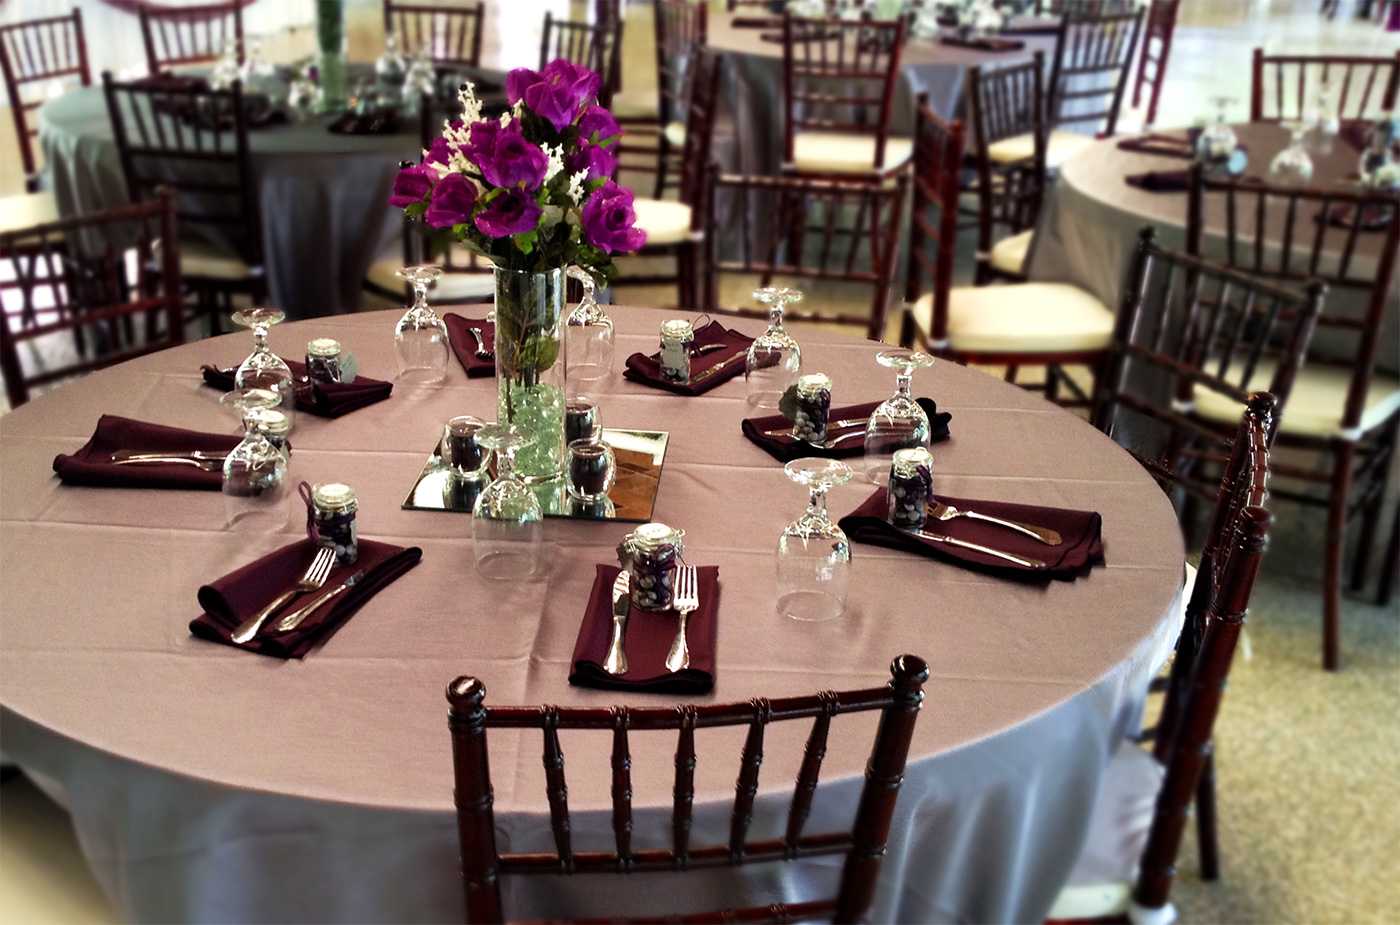 Maggies Café Catering Weddings - Catering table setting